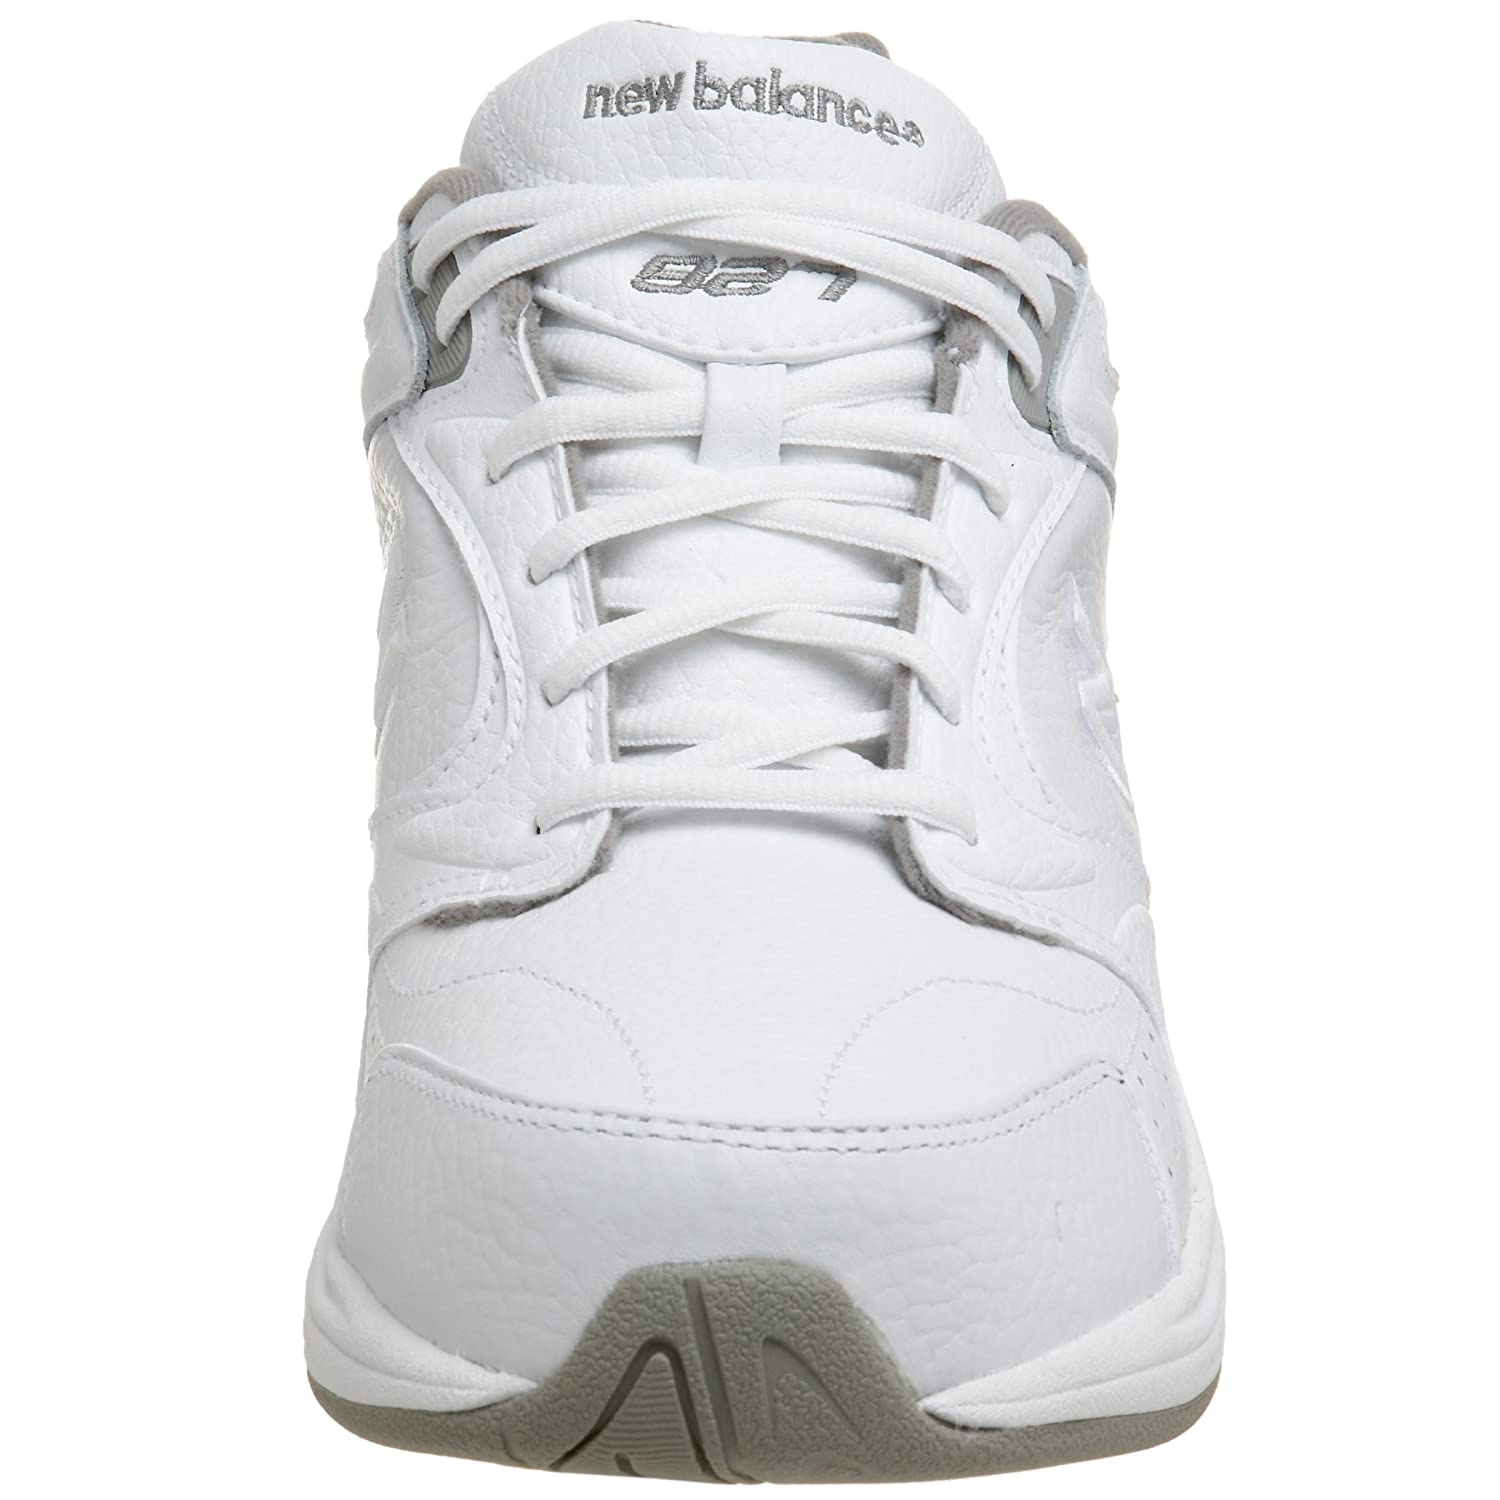 Recensioni Pattini Ambulanti New Balance 927 Donne nPrX7y